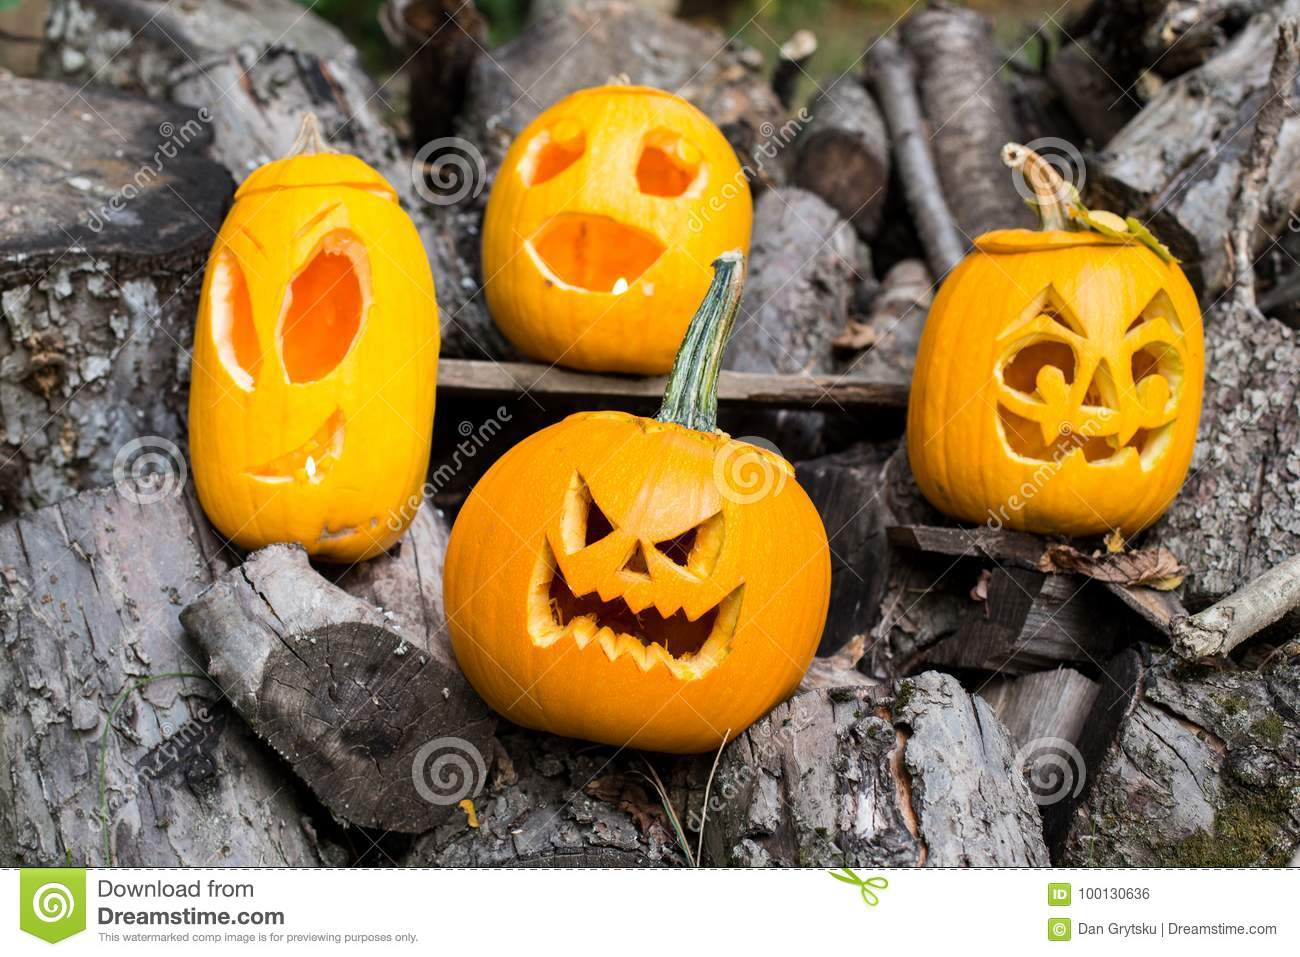 halloween themes composition of four carved halloween pumpkins on